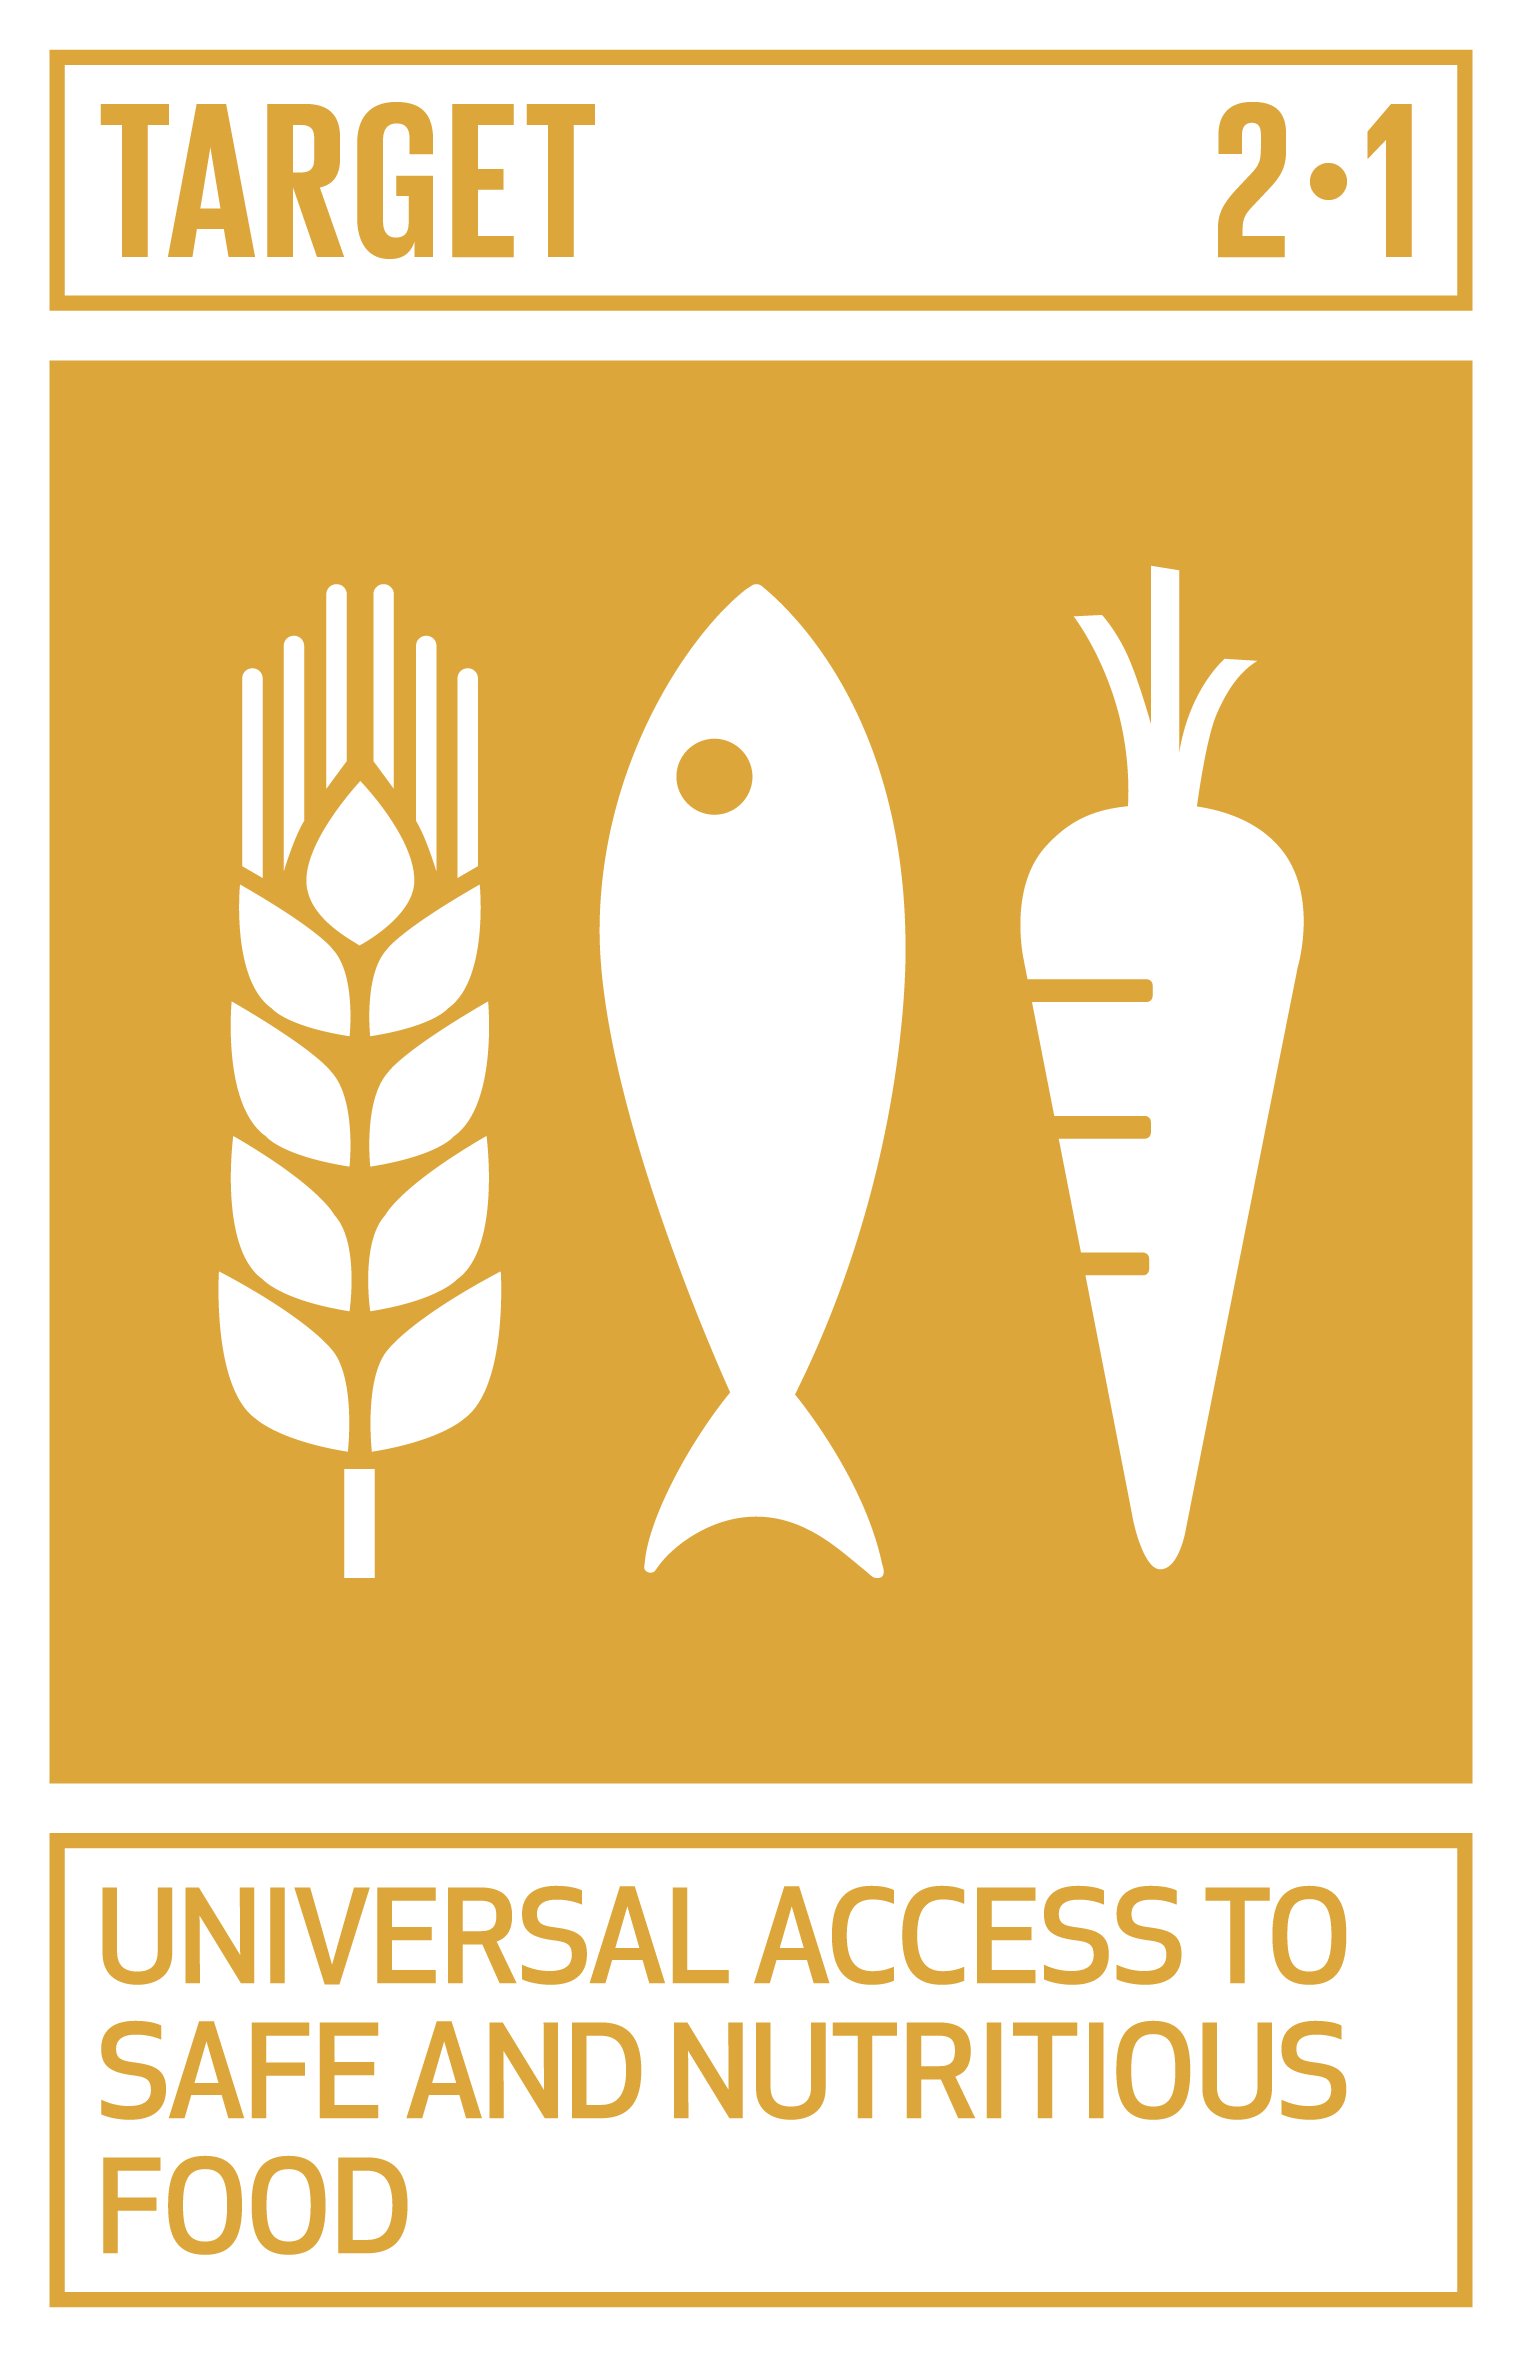 By 2030, end hunger and ensure access by all people, in particular the poor and people in vulnerable situations, including infants, to safe, nutritious and sufficient food all year round.   iNDICATORS    2.1.1  Prevalence of undernourishment   2.1.2  Prevalence of moderate or severe food insecurity in the population, based on the Food Insecurity Experience Scale (FIES) Prevalence of moderate or severe food insecurity in the population, based on the Food Insecurity Experience Scale (FIES)